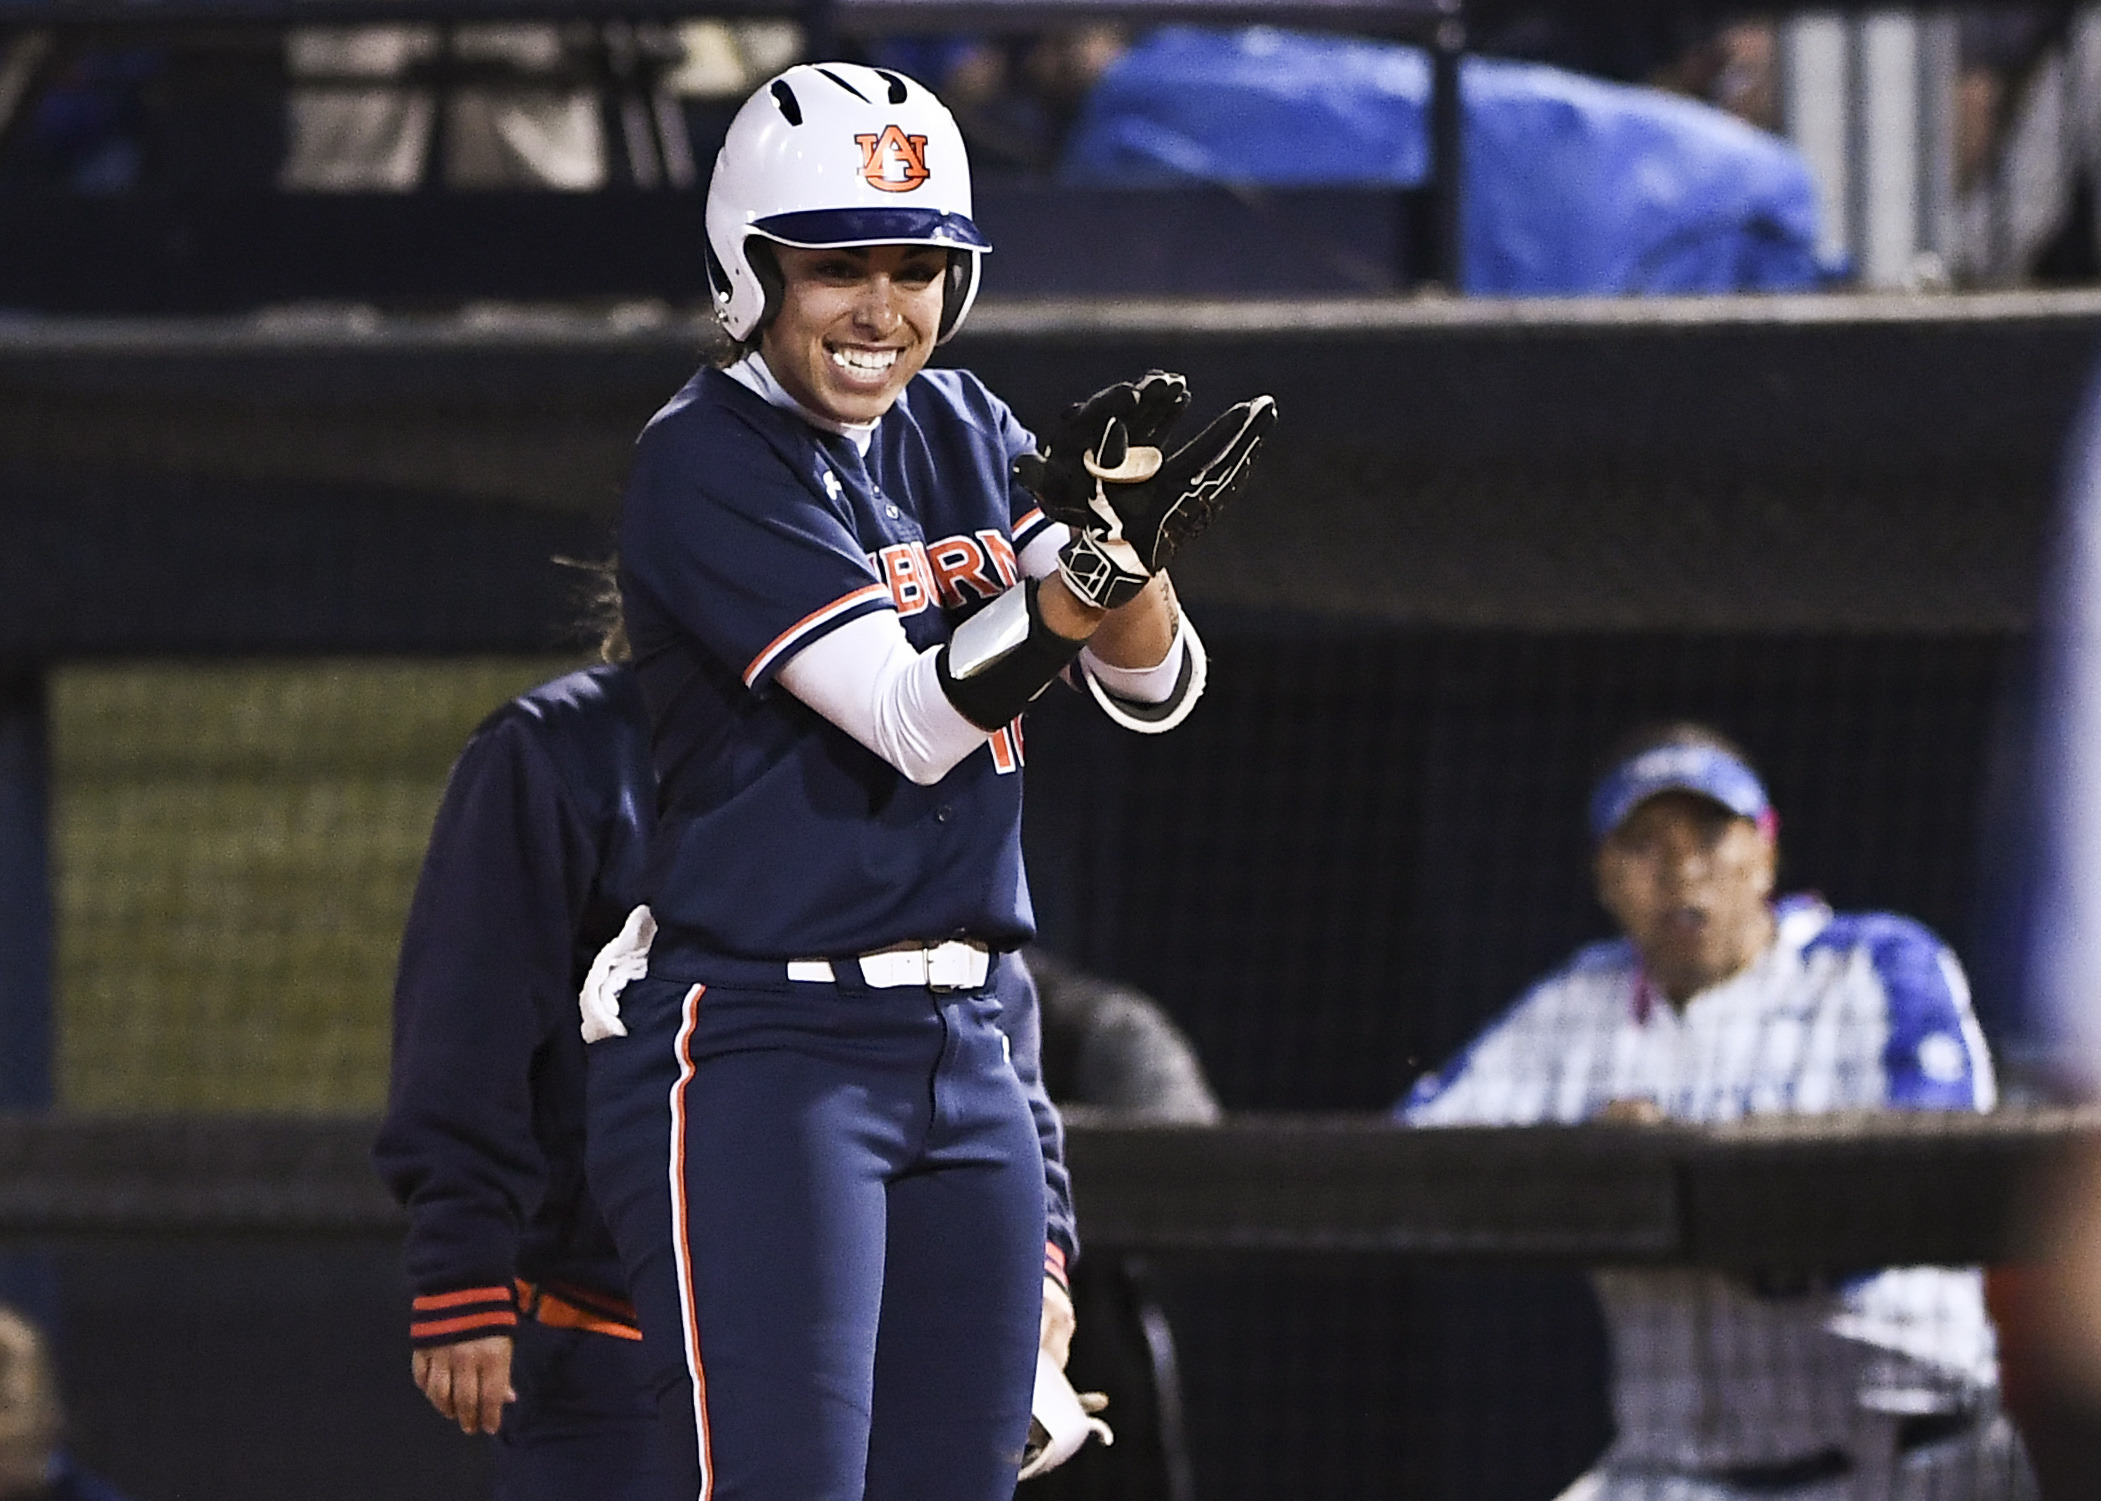 softball - auburn university athletics